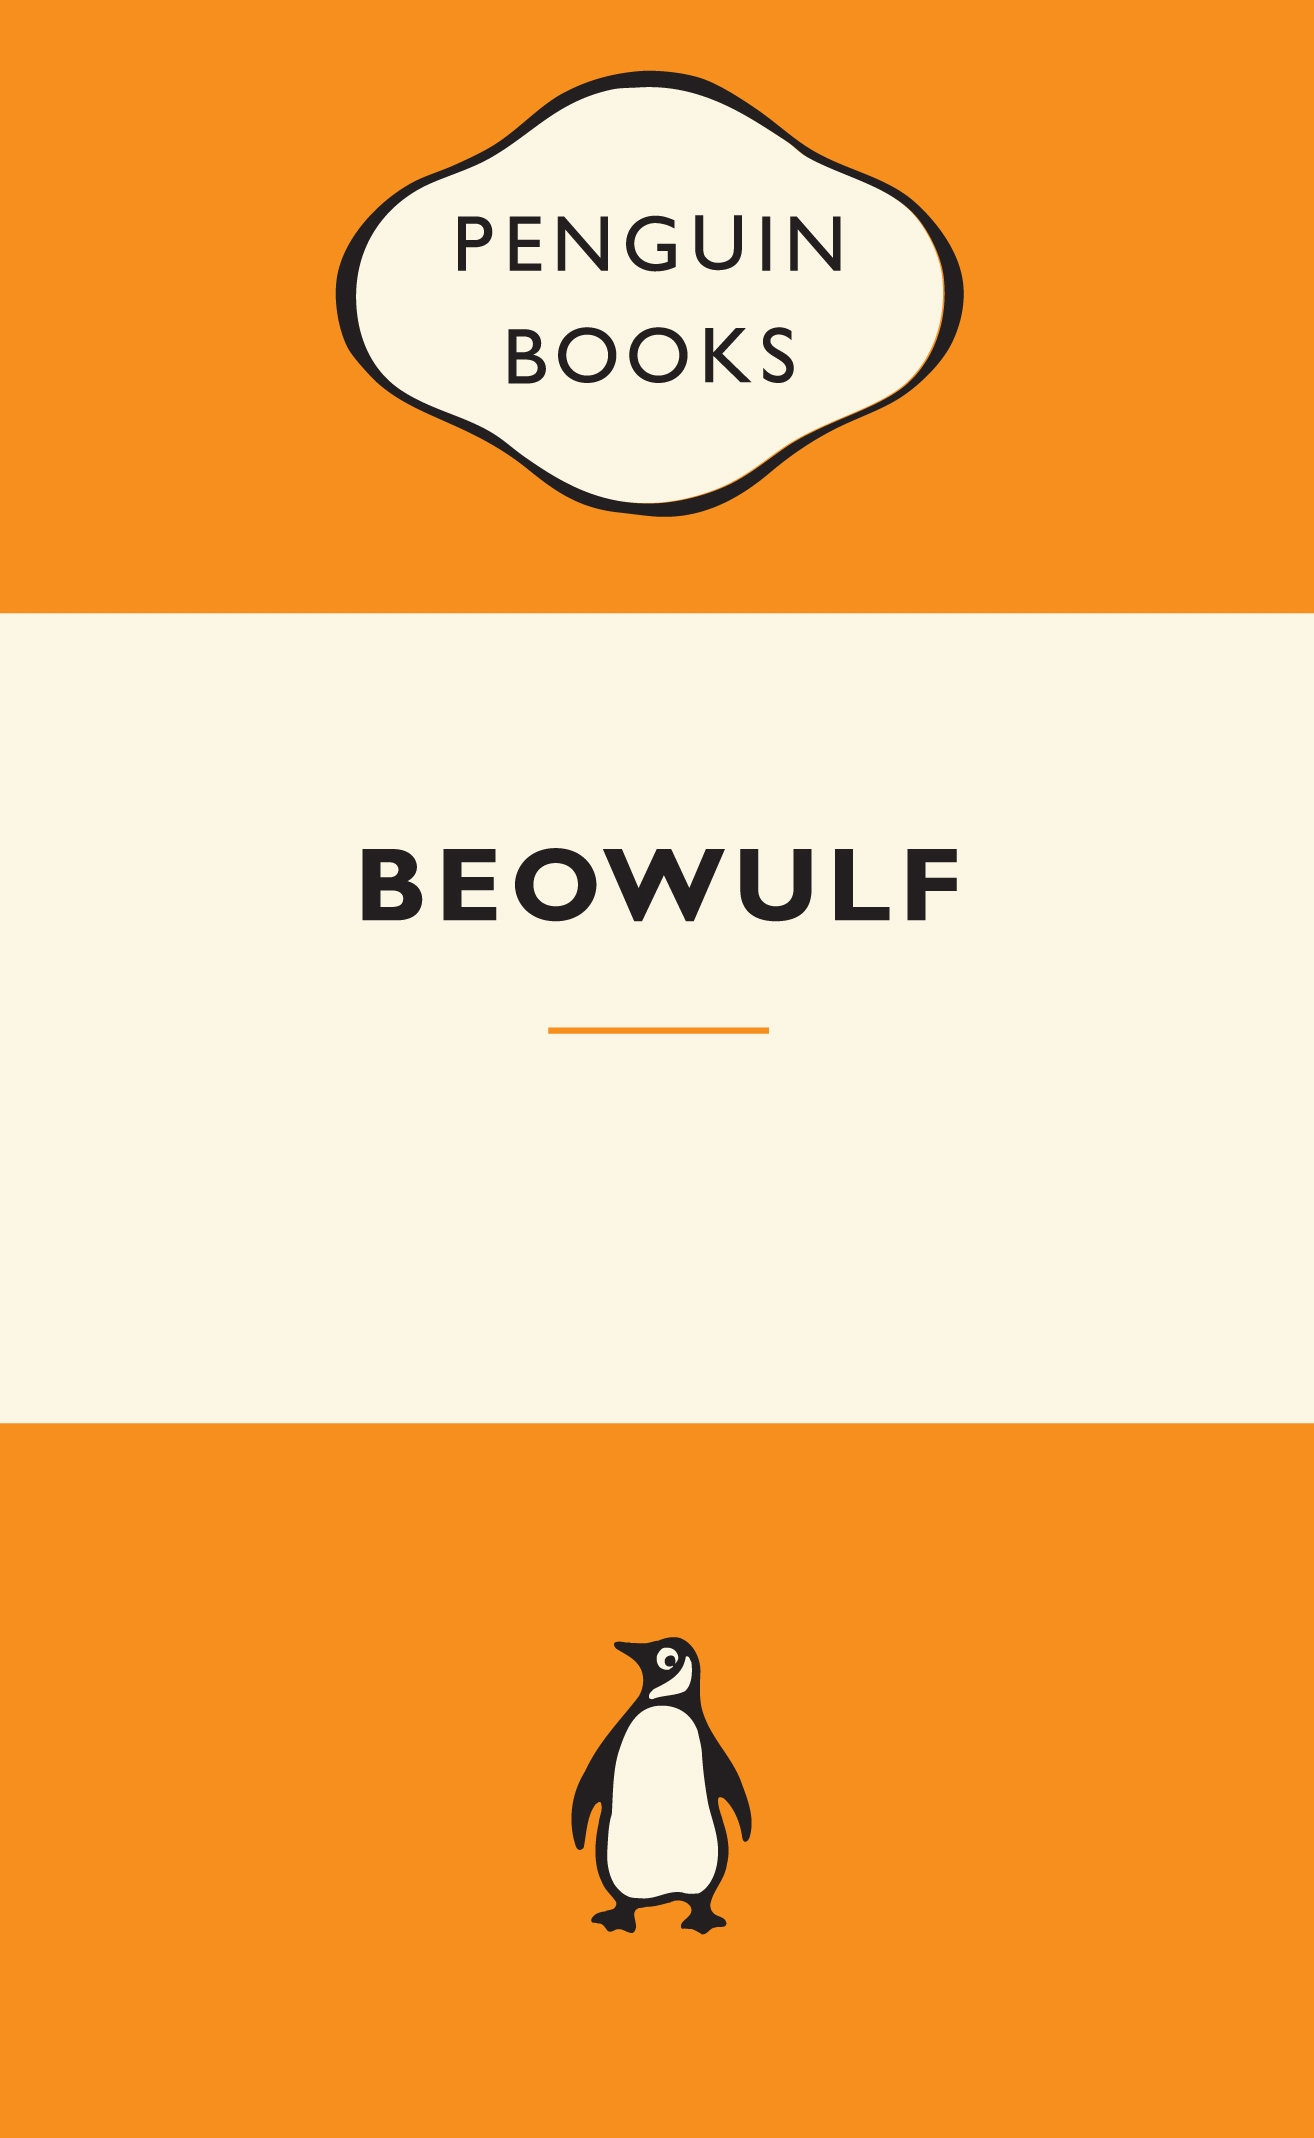 why read beowulf Vengeance beowulf exacted for the death of hygelac, his beloved i this content   read as satan and beowulf's interest in the treasure construed as avarice.